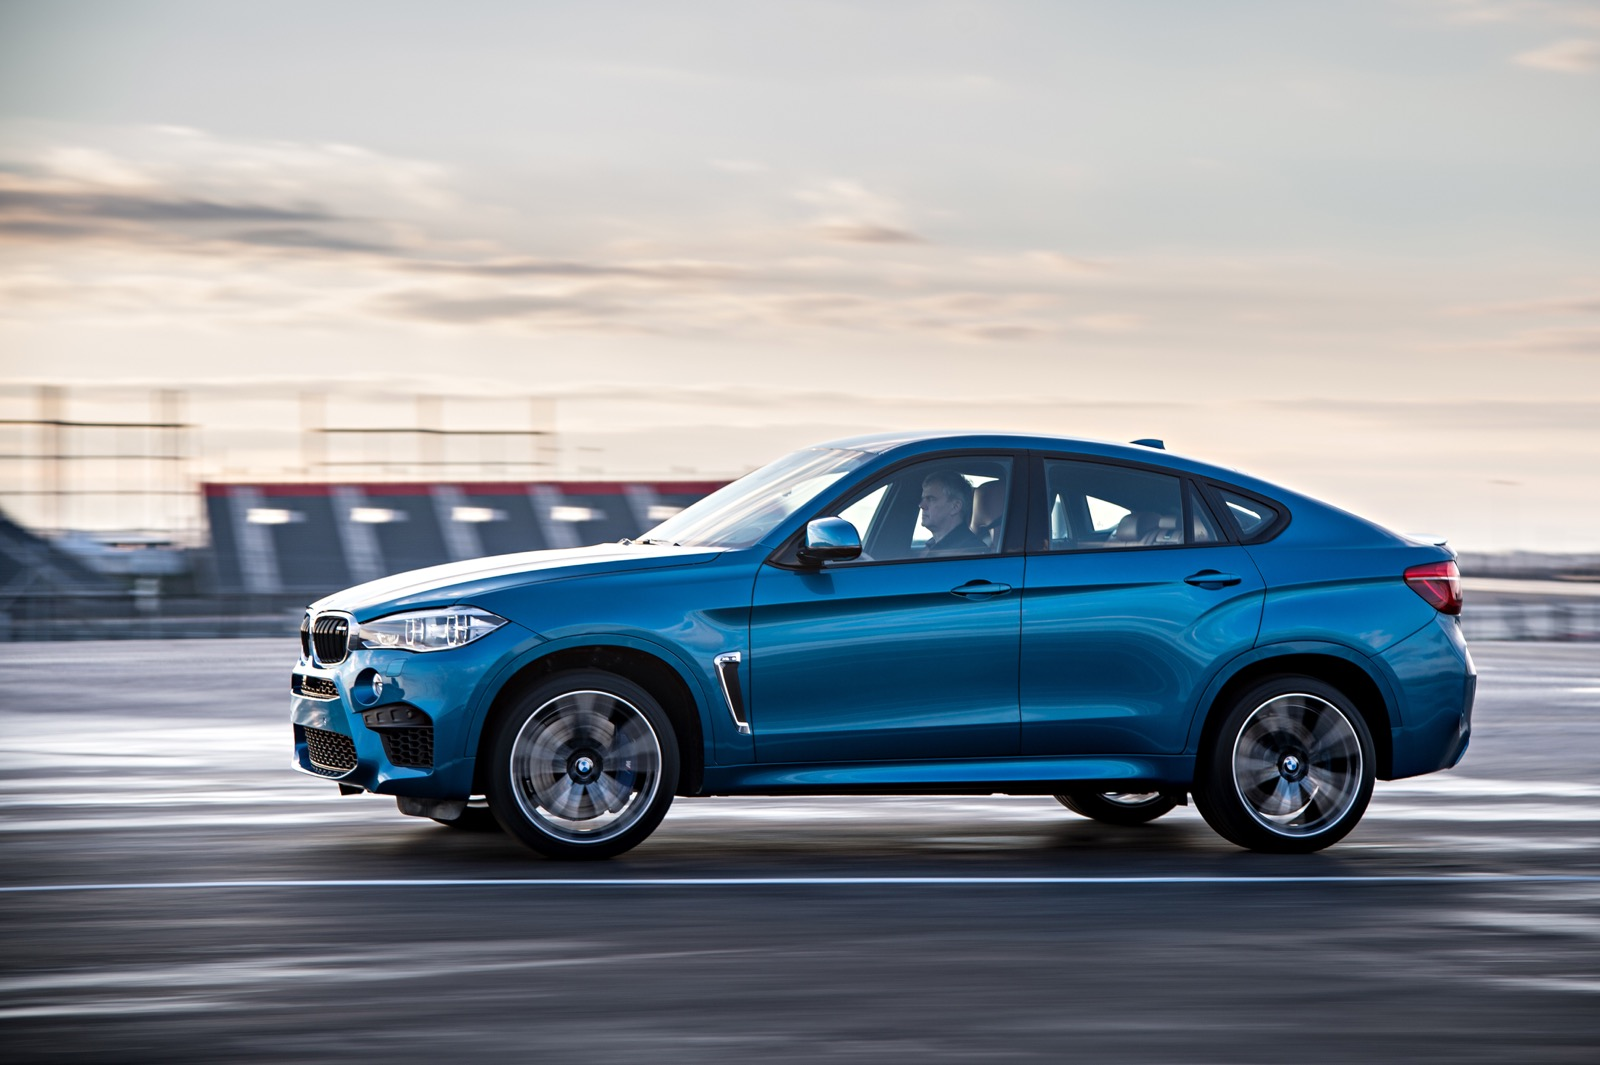 2015 bmw x6 m review caradvice. Black Bedroom Furniture Sets. Home Design Ideas